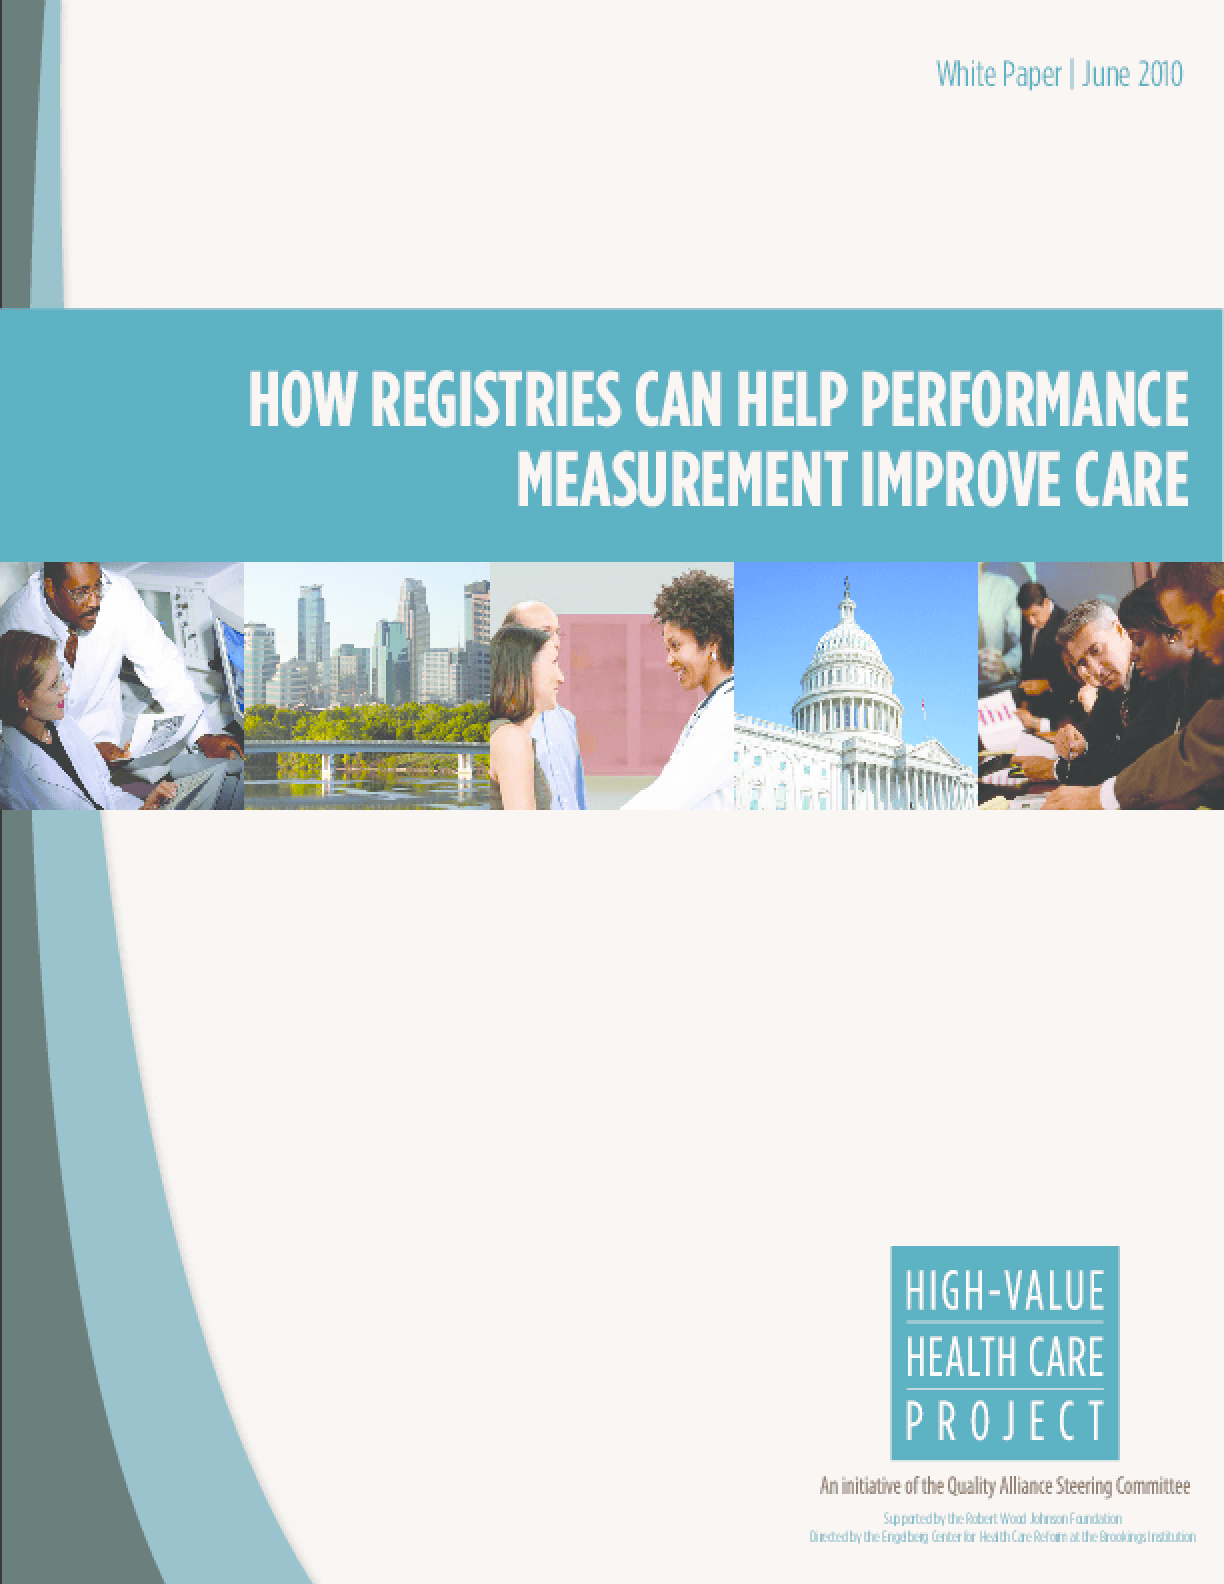 How Registries Can Help Performance Measurement Improve Care